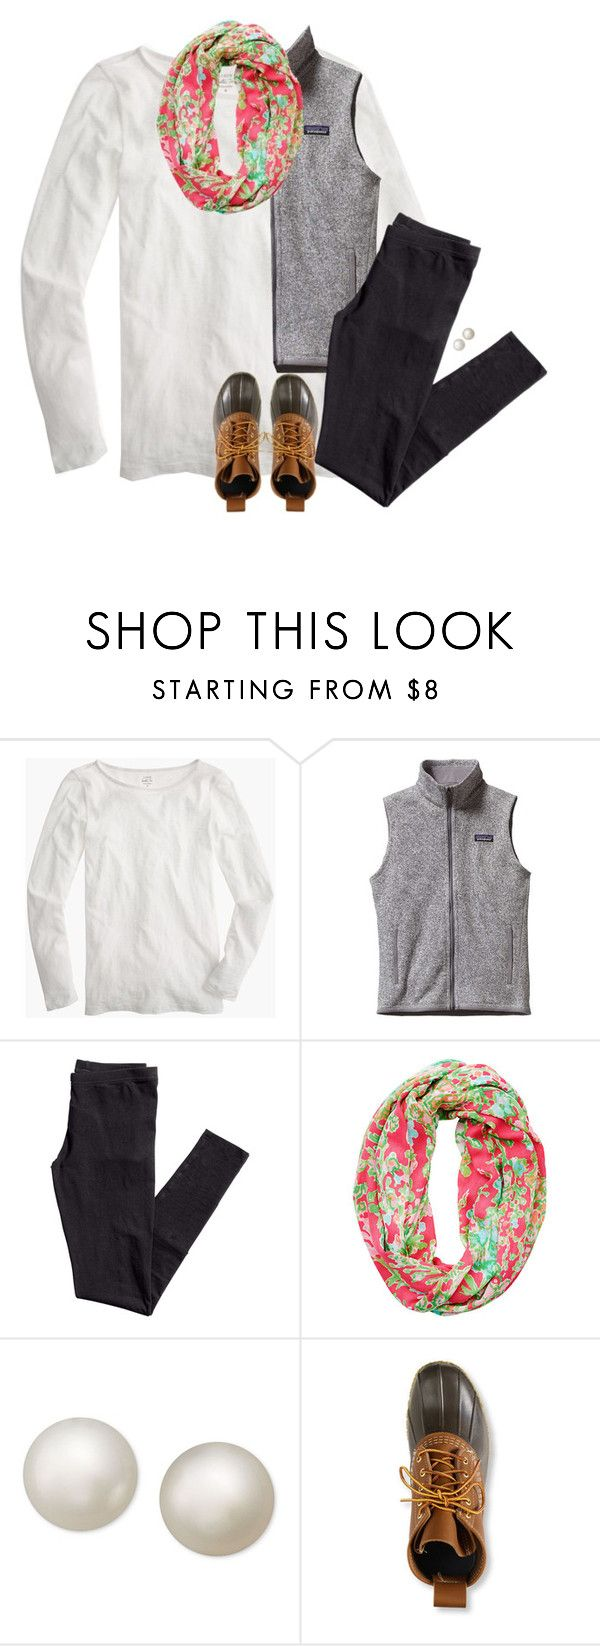 """""""I don't want a never ending life, I just want to be alive while I'm here"""" by stripedprep ❤ liked on Polyvore featuring J.Crew, Patagonia, H&M, Lilly Pulitzer, R.H. Macy's & Co. and L.L.Bean"""